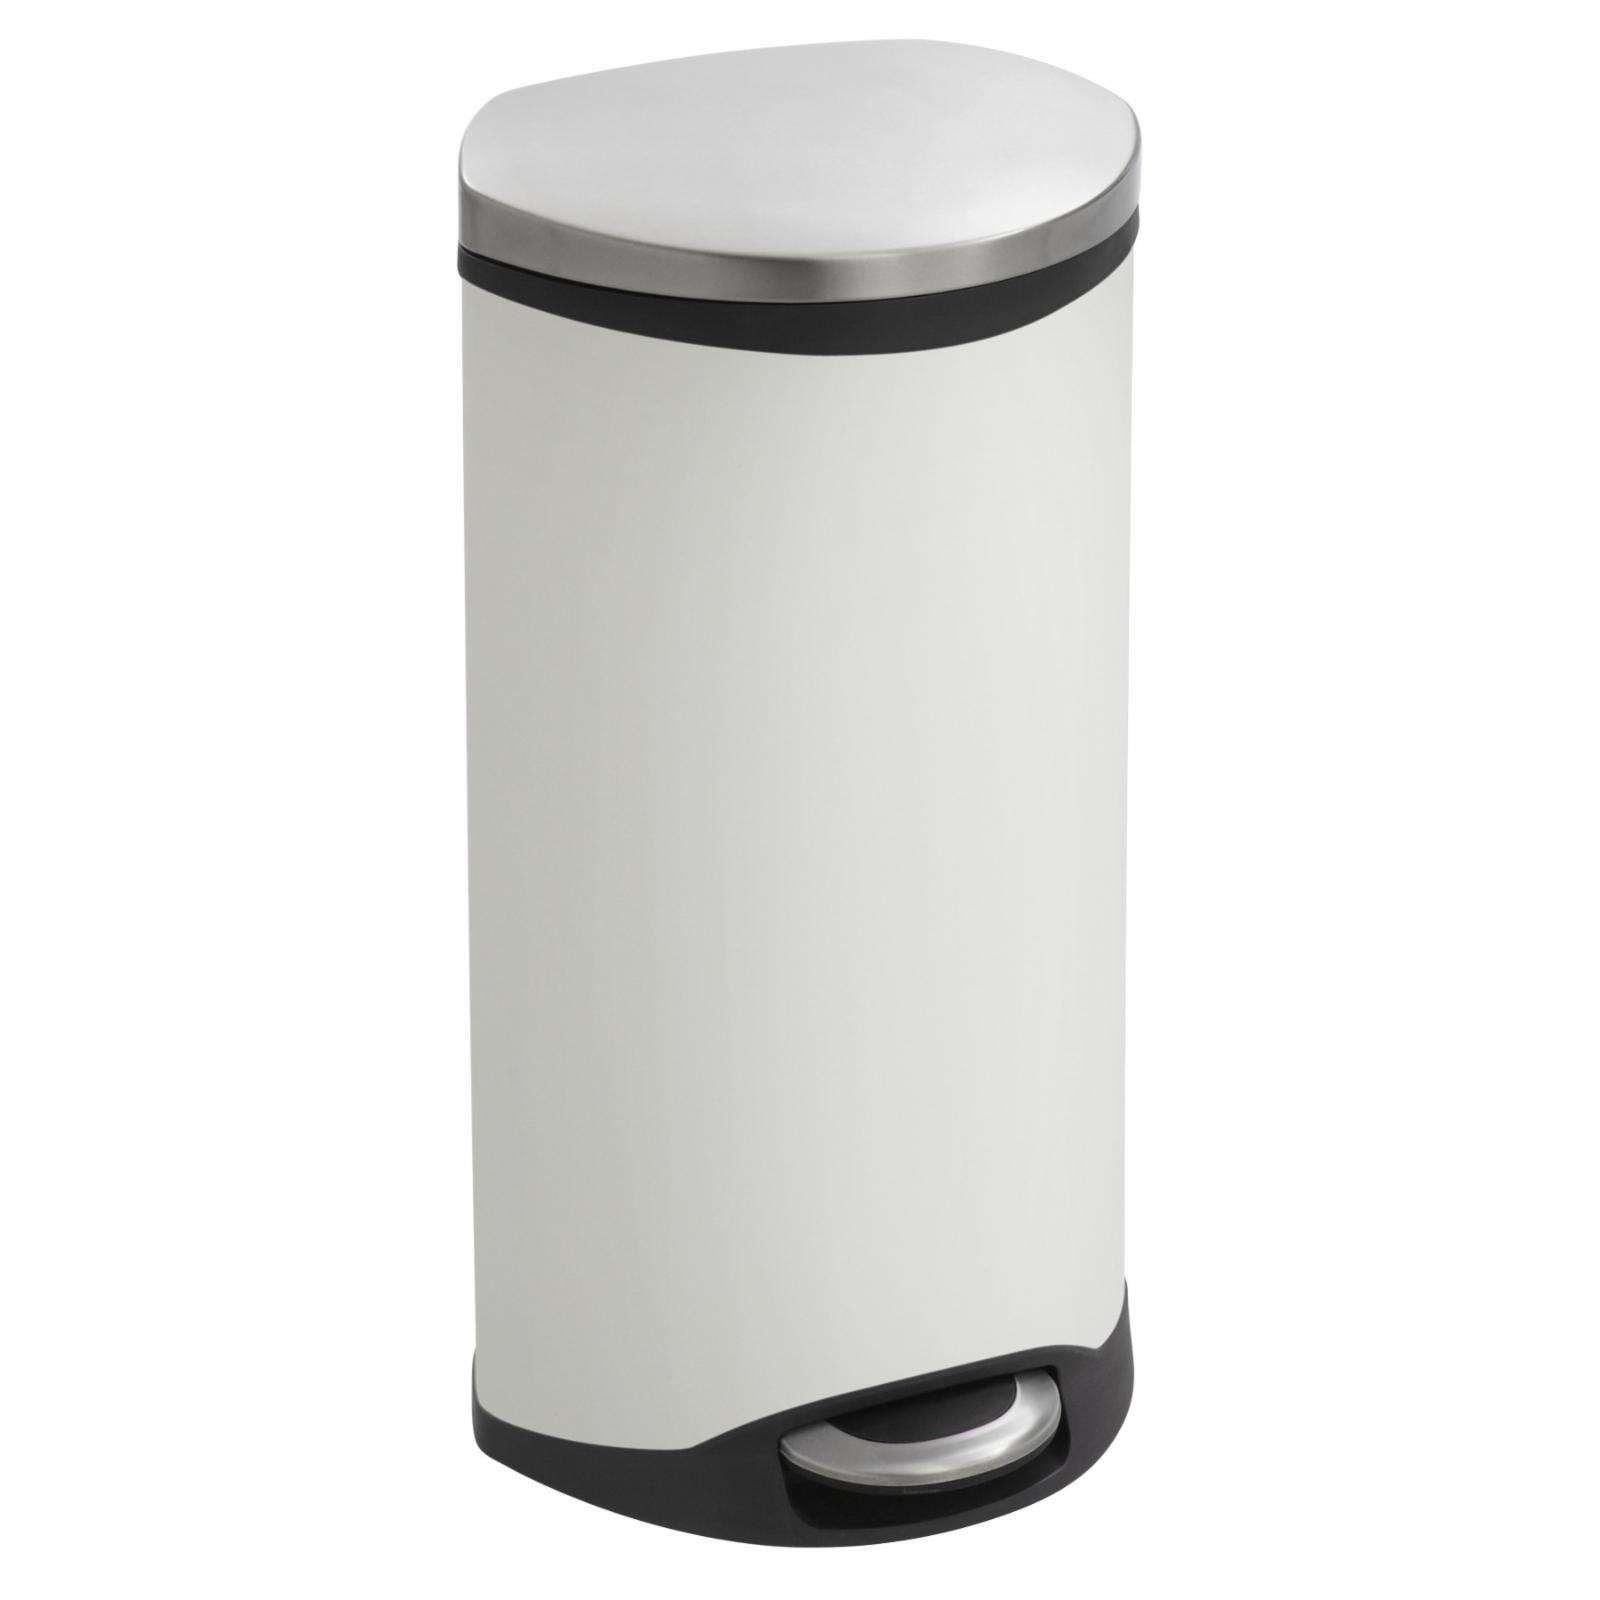 Safco 7.5 Gallon Step-On Trash Can White - 9902WH